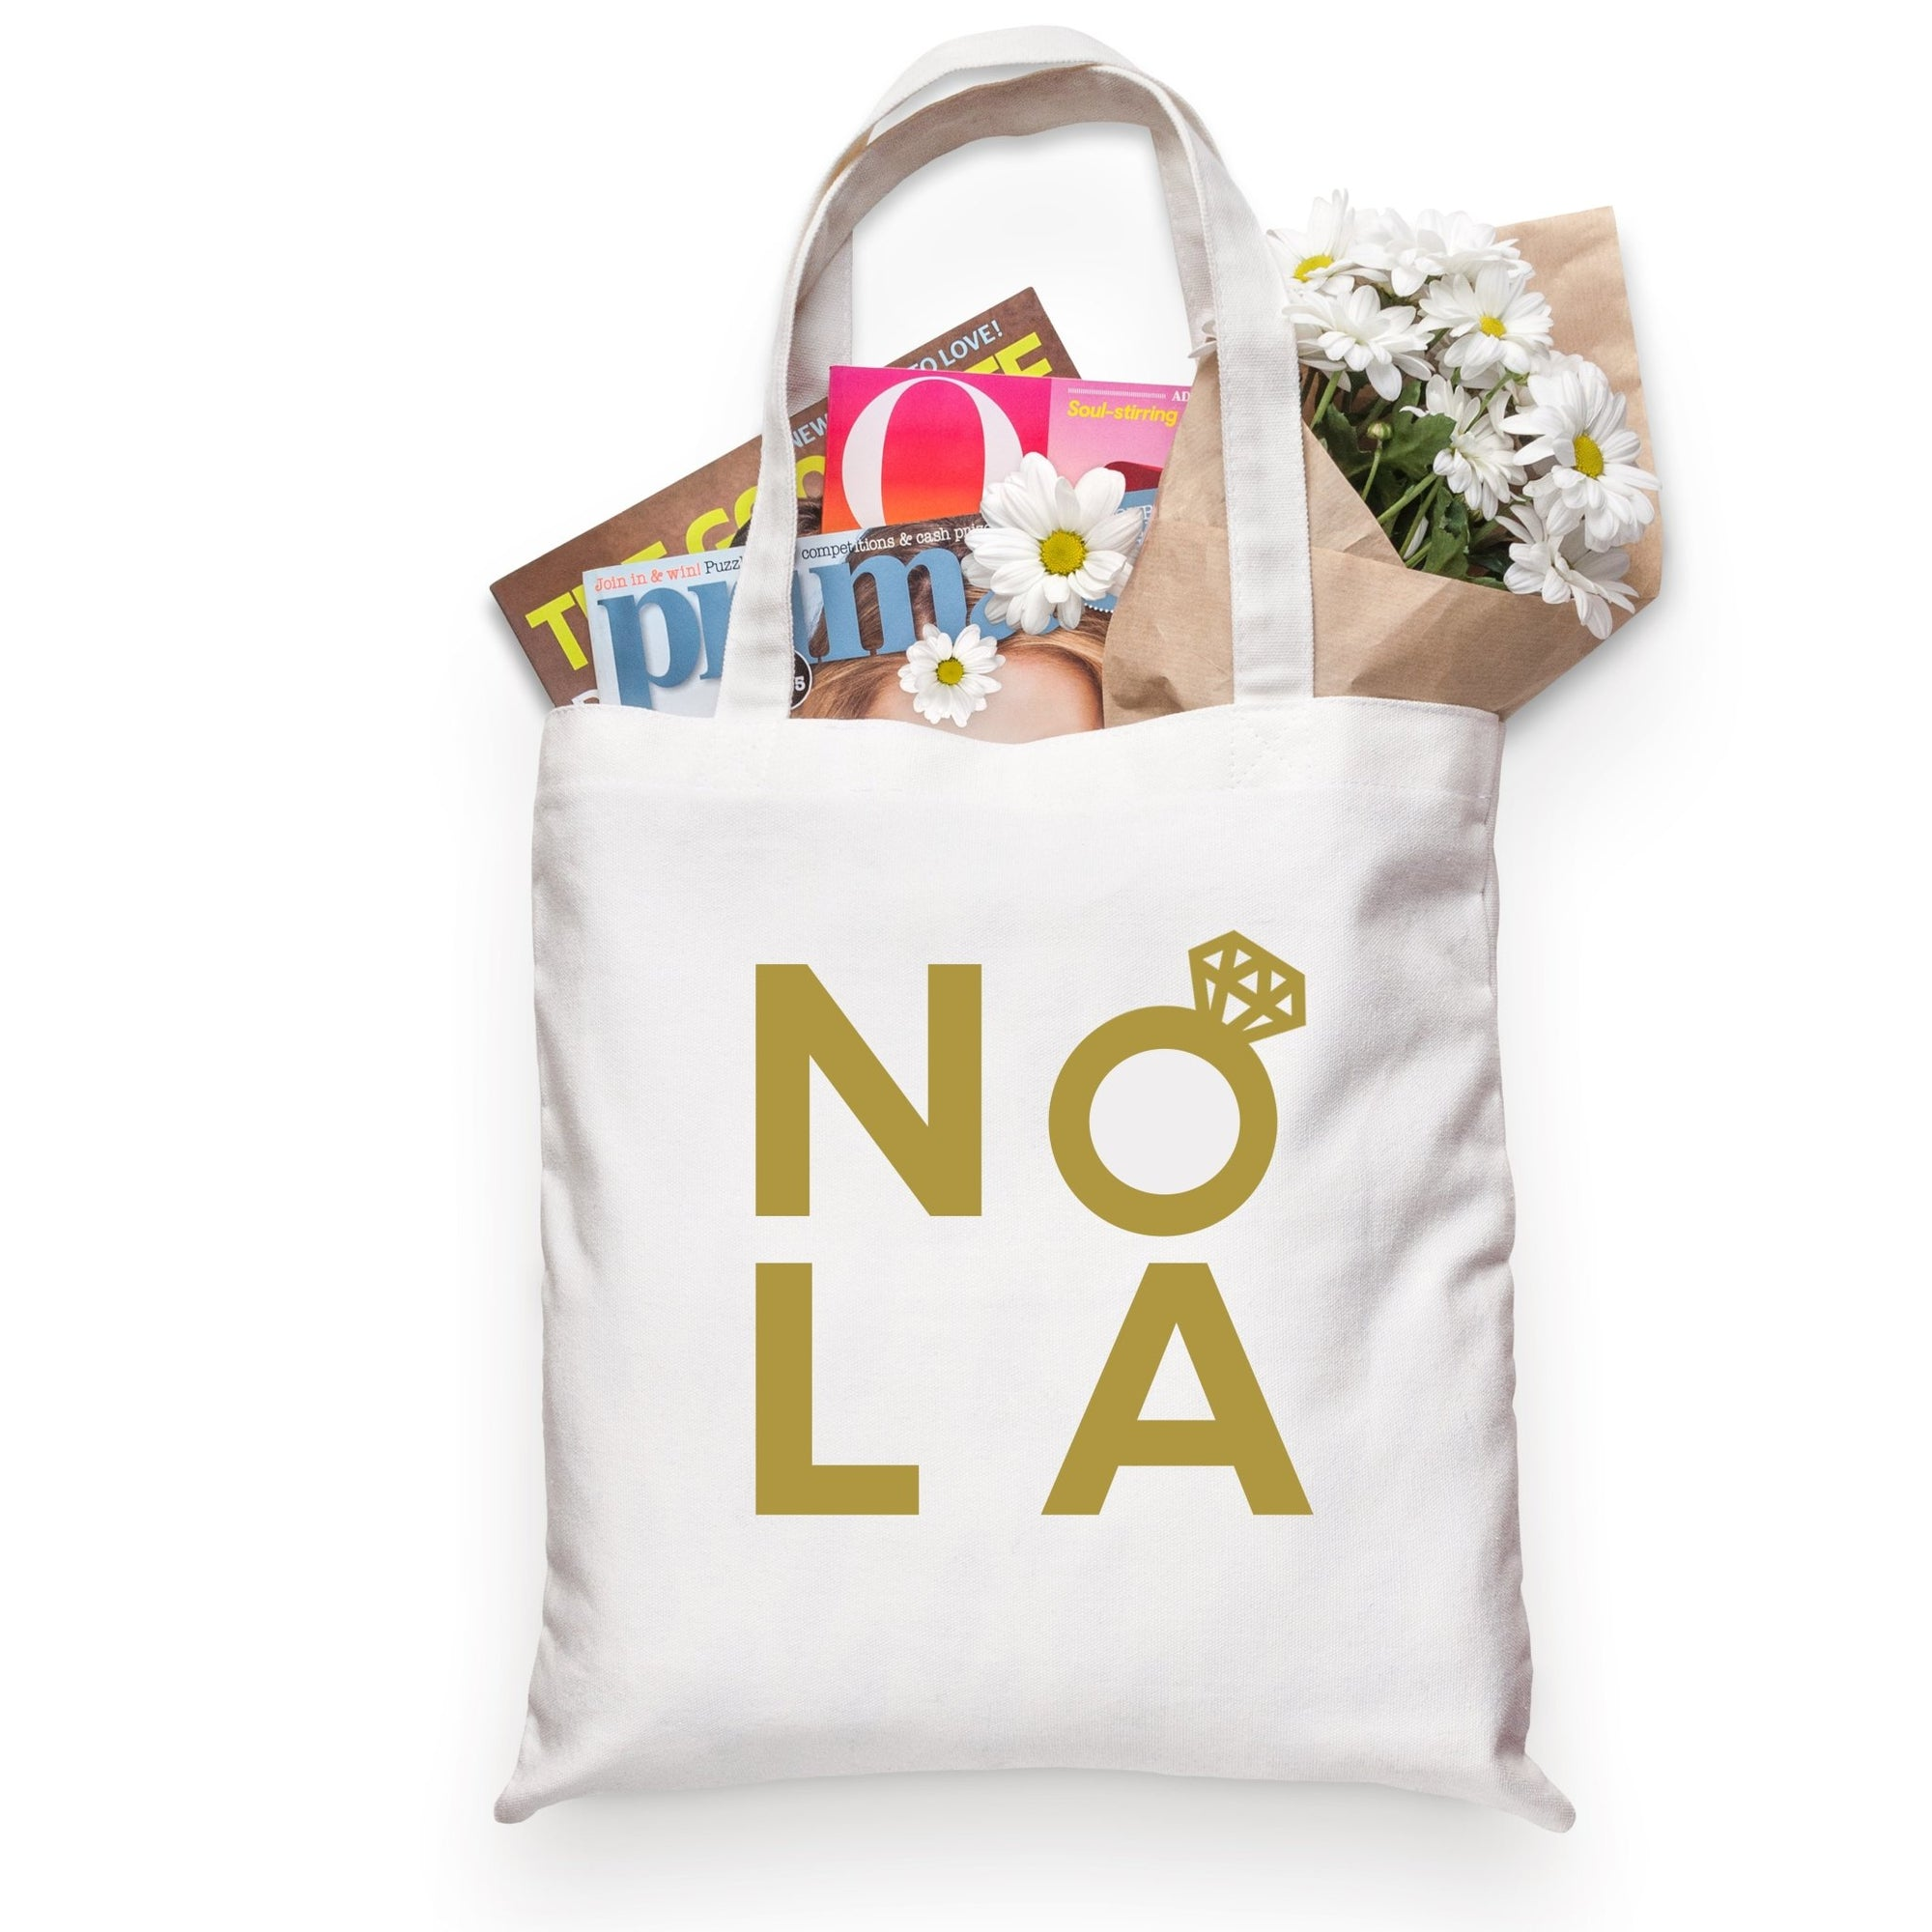 NOLA Tote - Sprinkled With Pink #bachelorette #custom #gifts